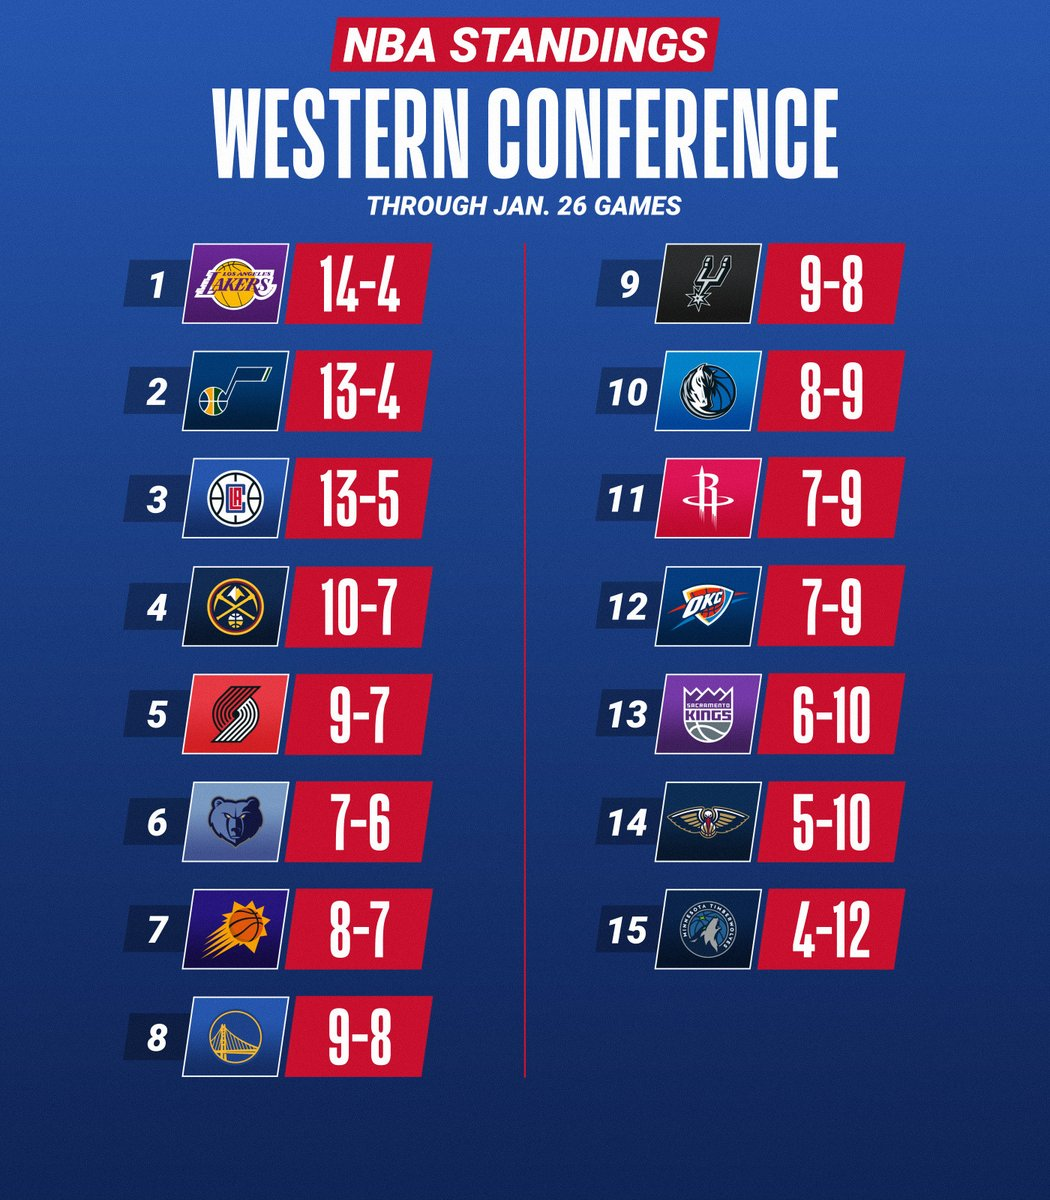 The updated NBA standings after Tuesday night.